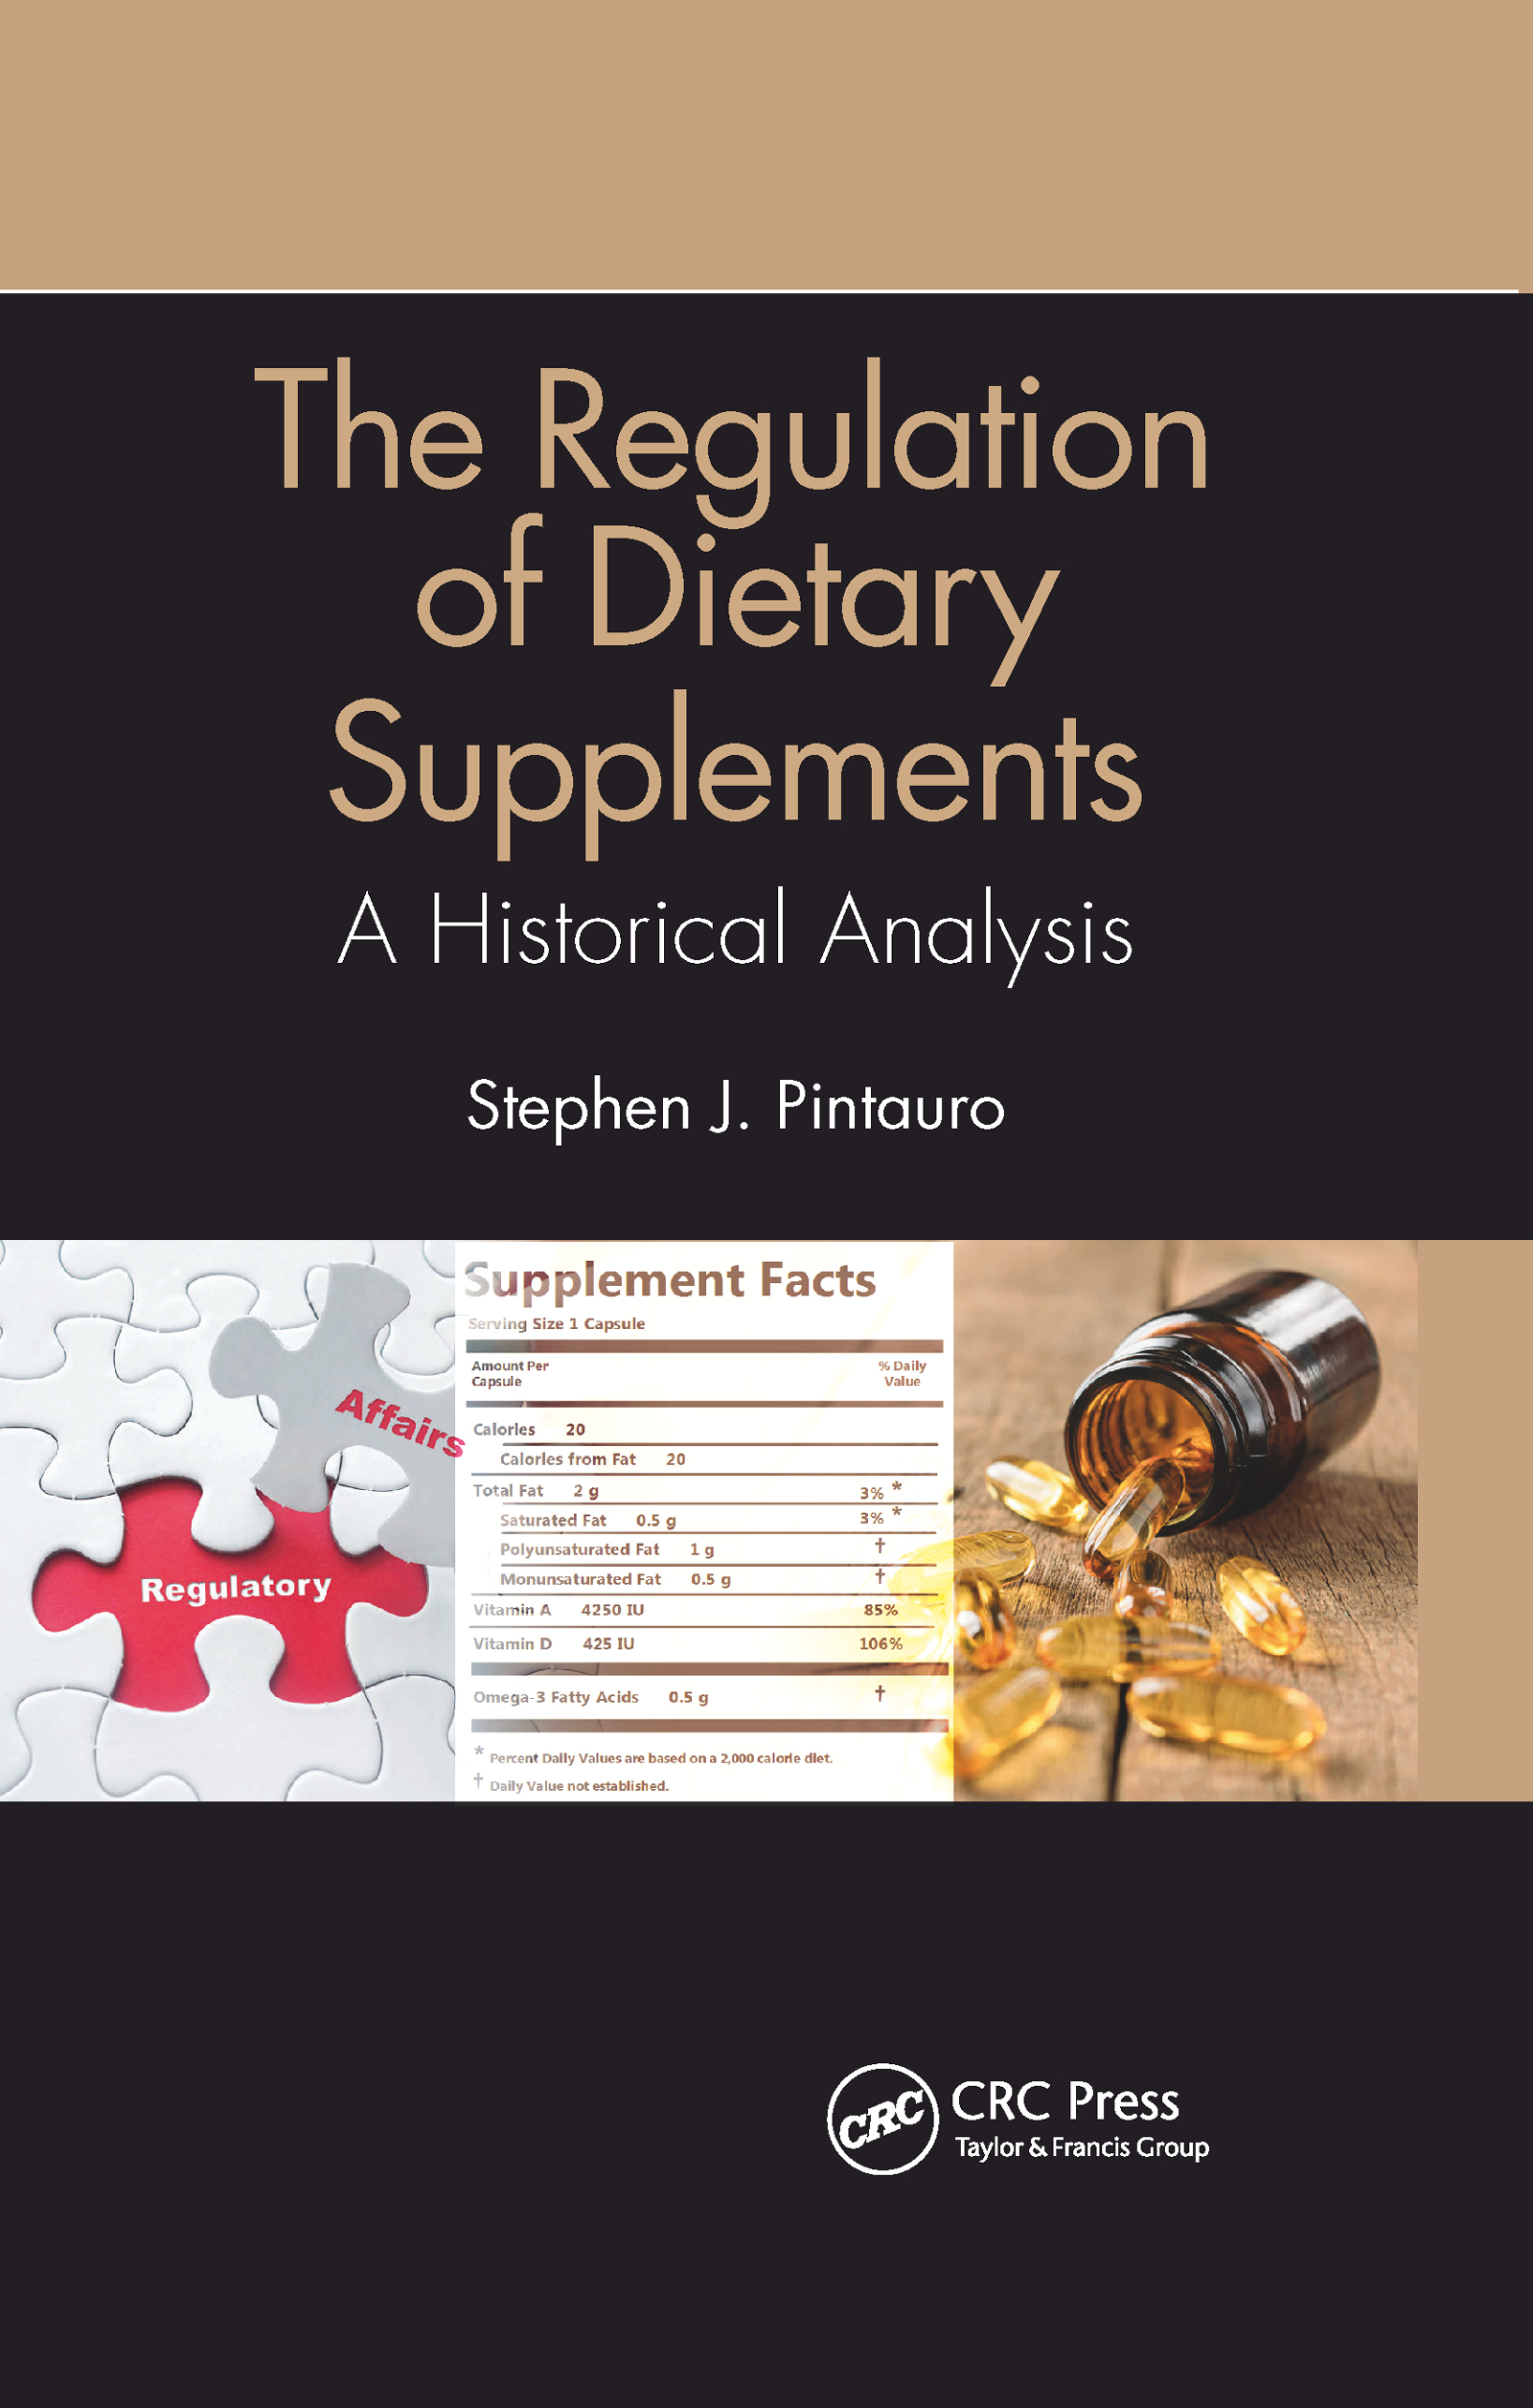 The Regulation of Dietary Supplements